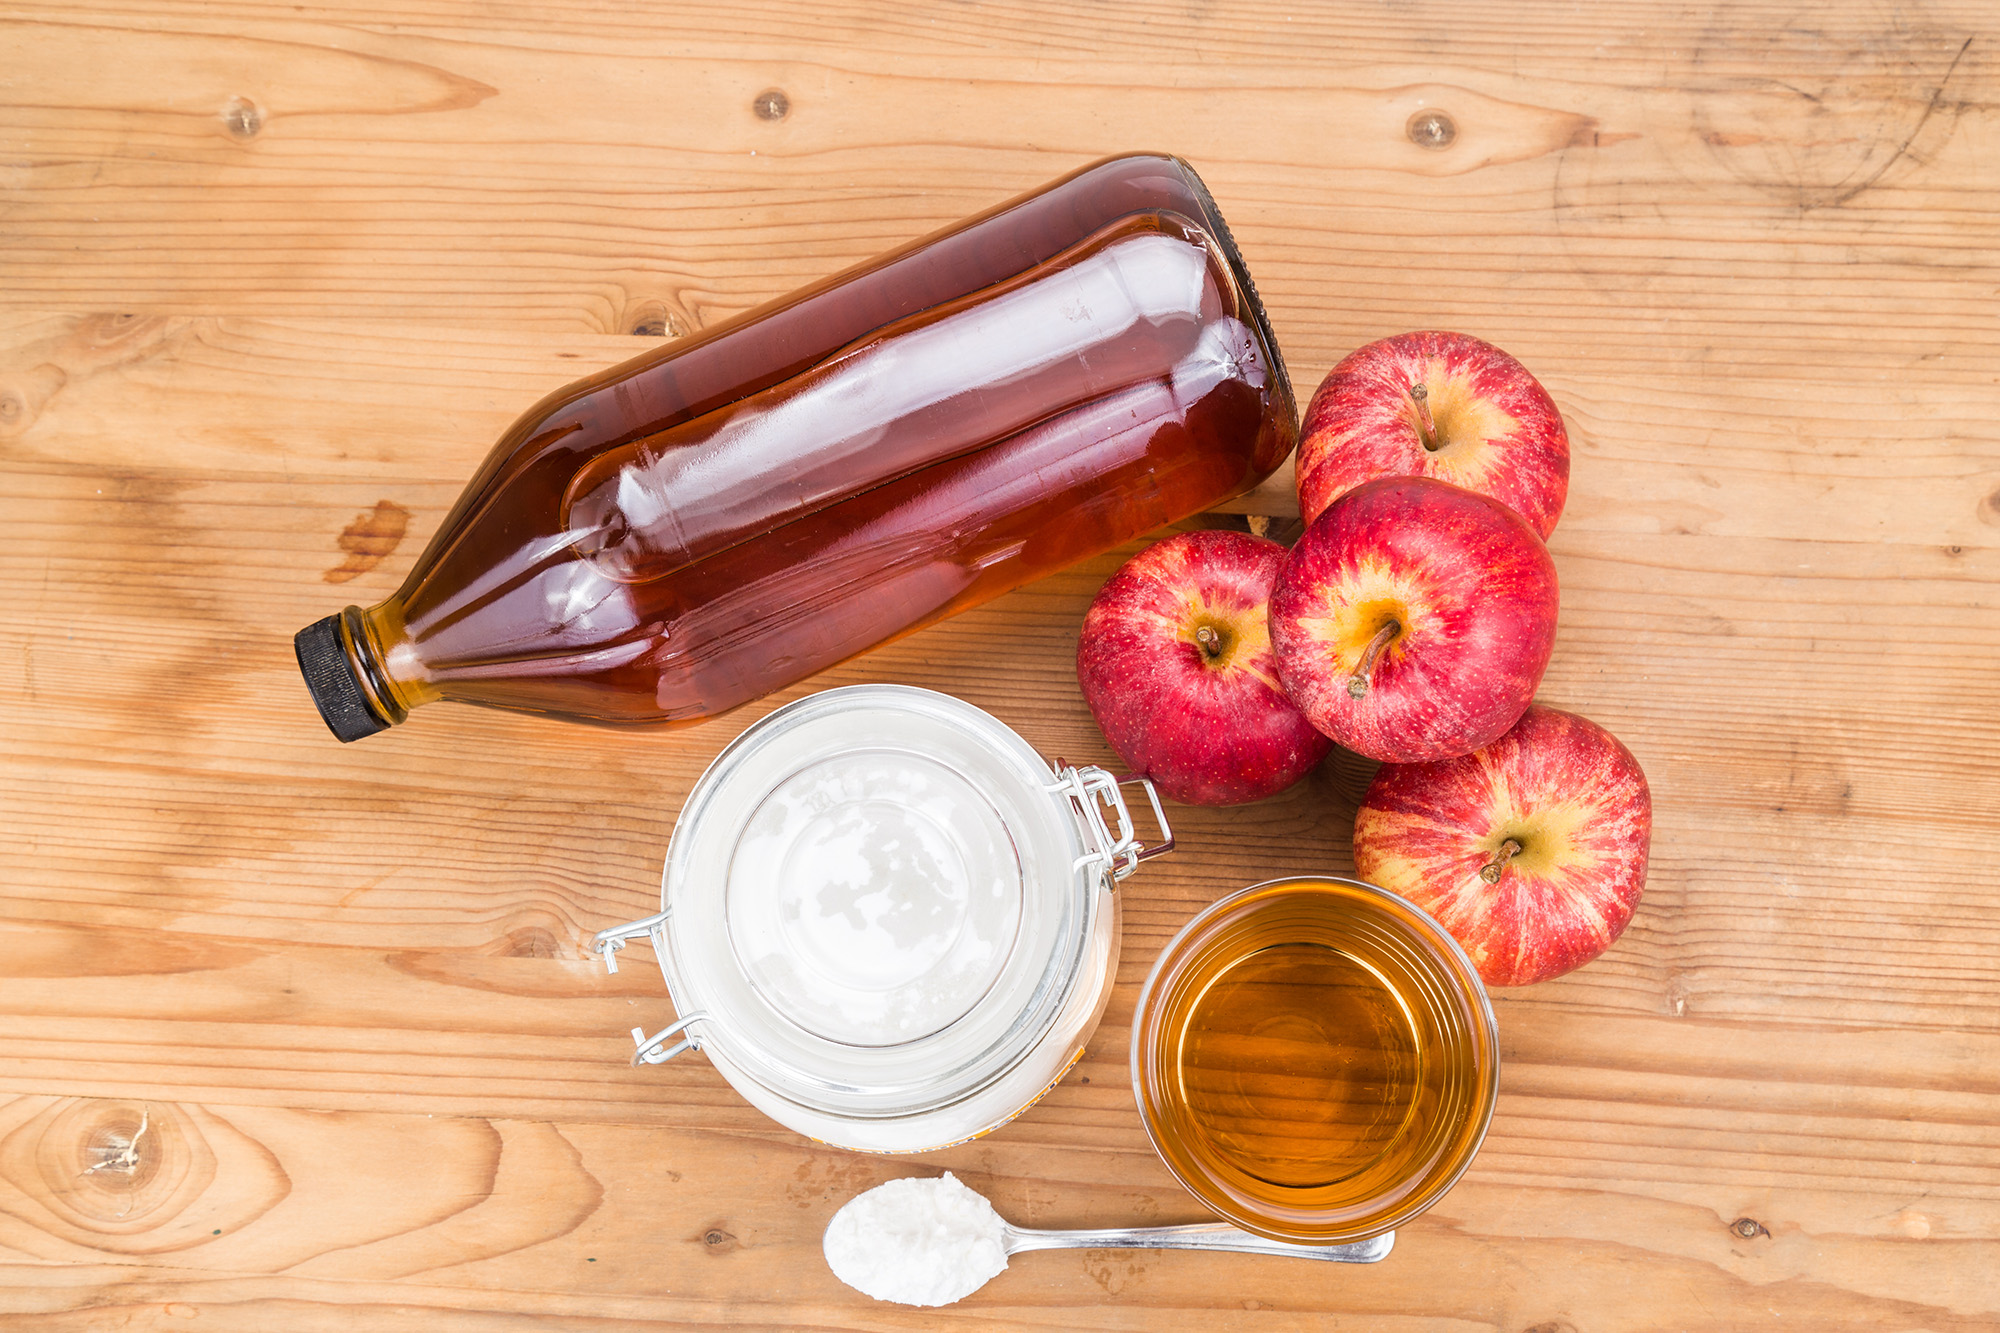 13 Ways to Clean Your Home with Apple Cider Vinegar